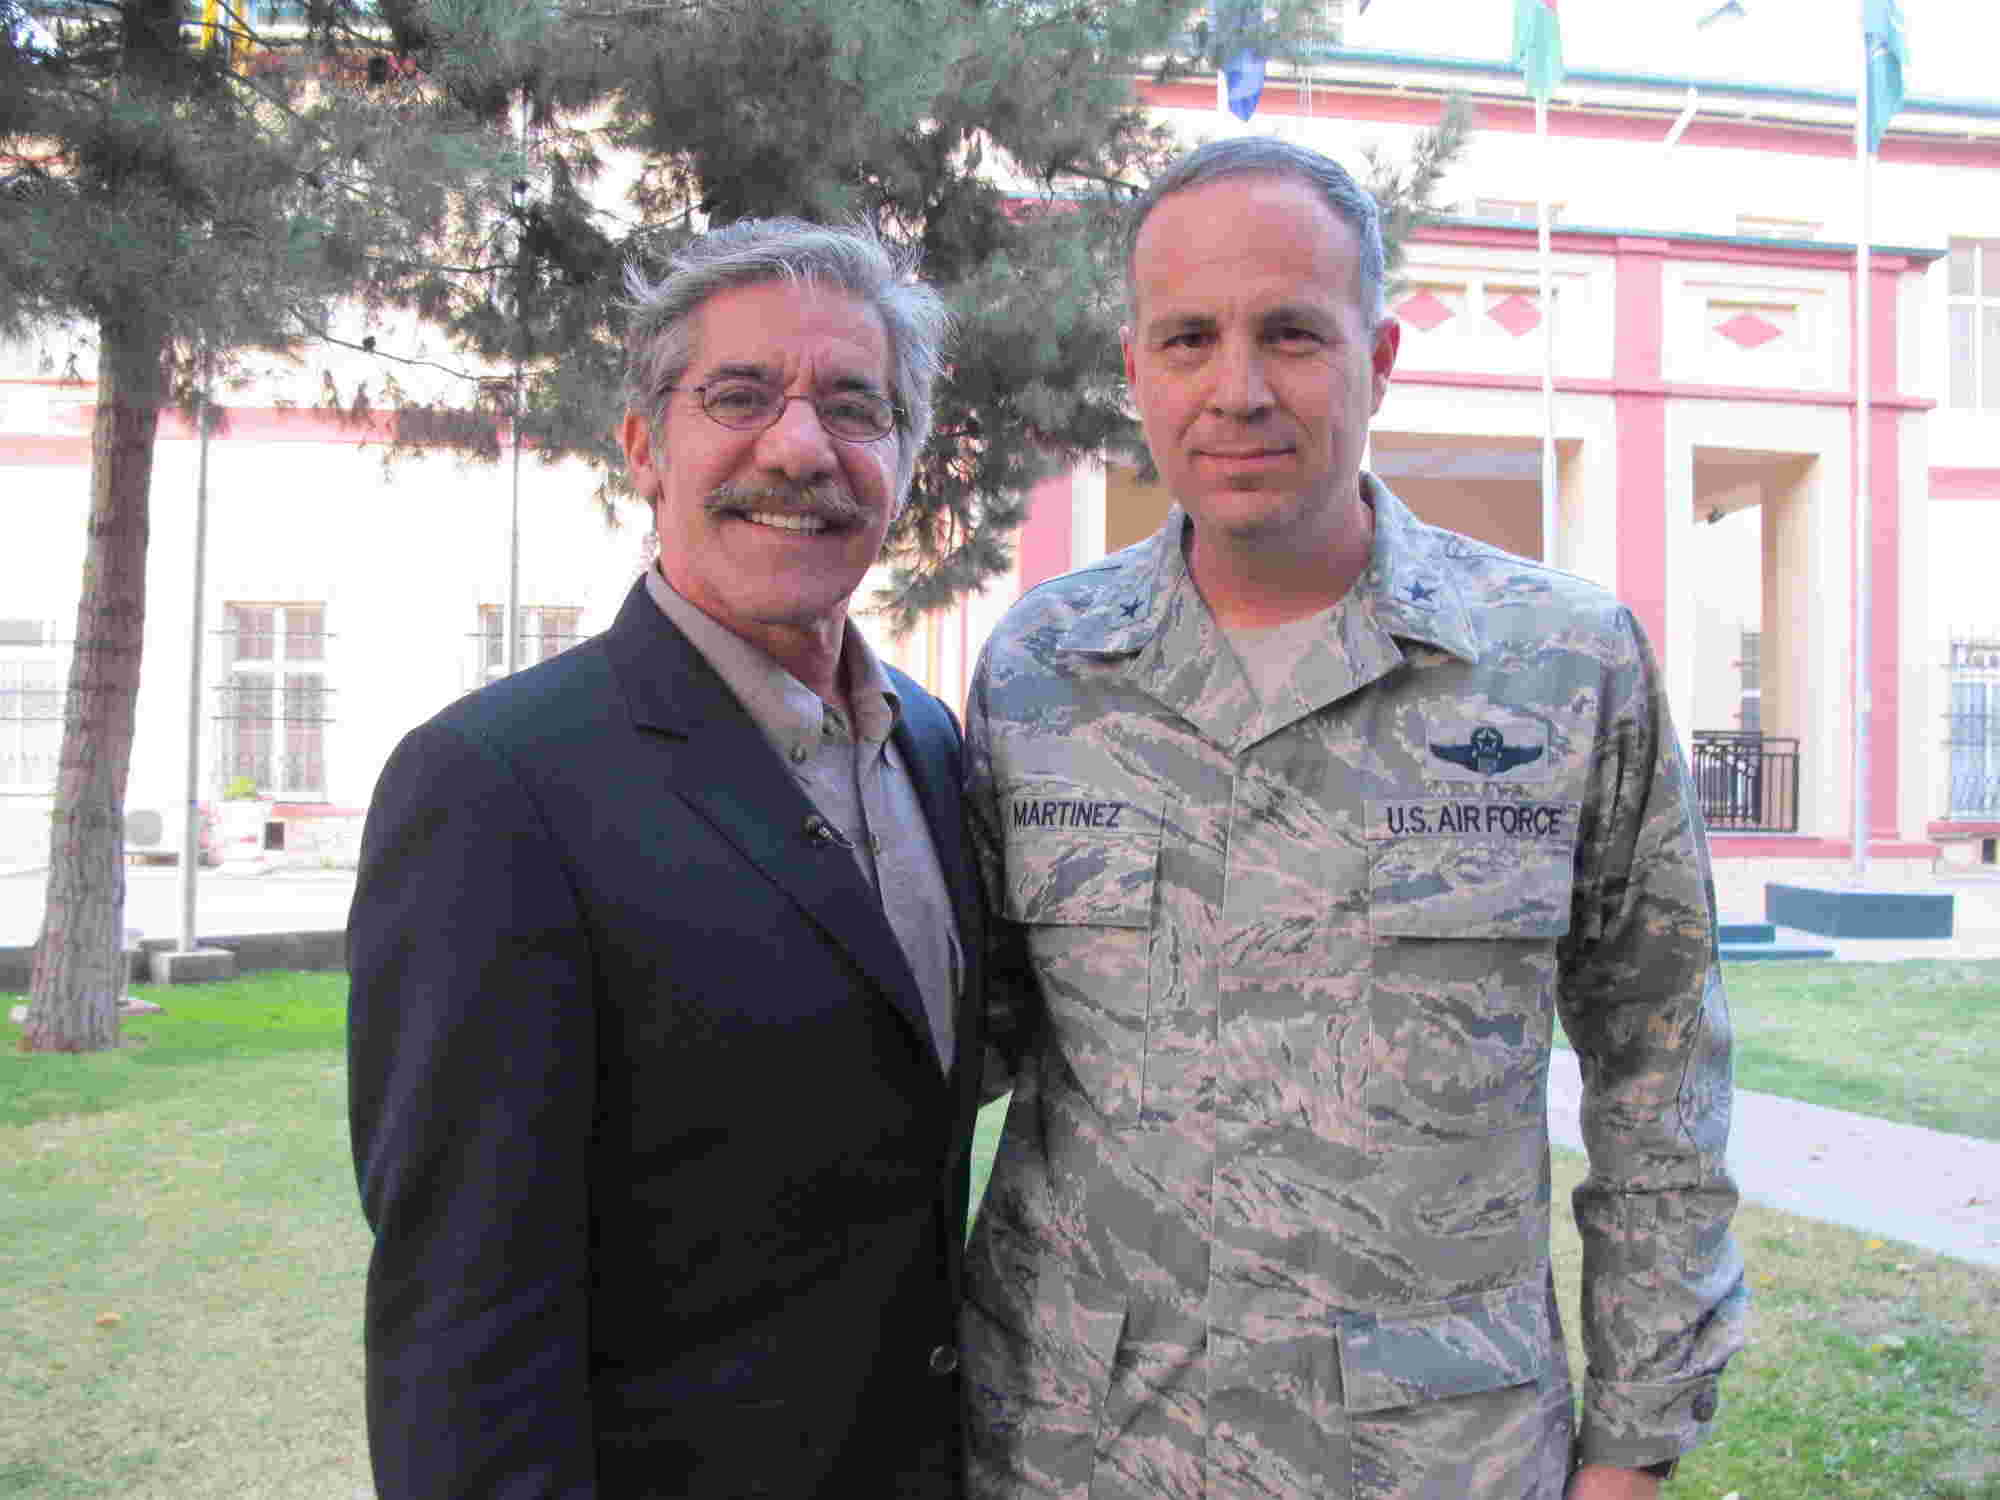 Geraldo poses with major General Jerry P Martinez, U.S. Air Force